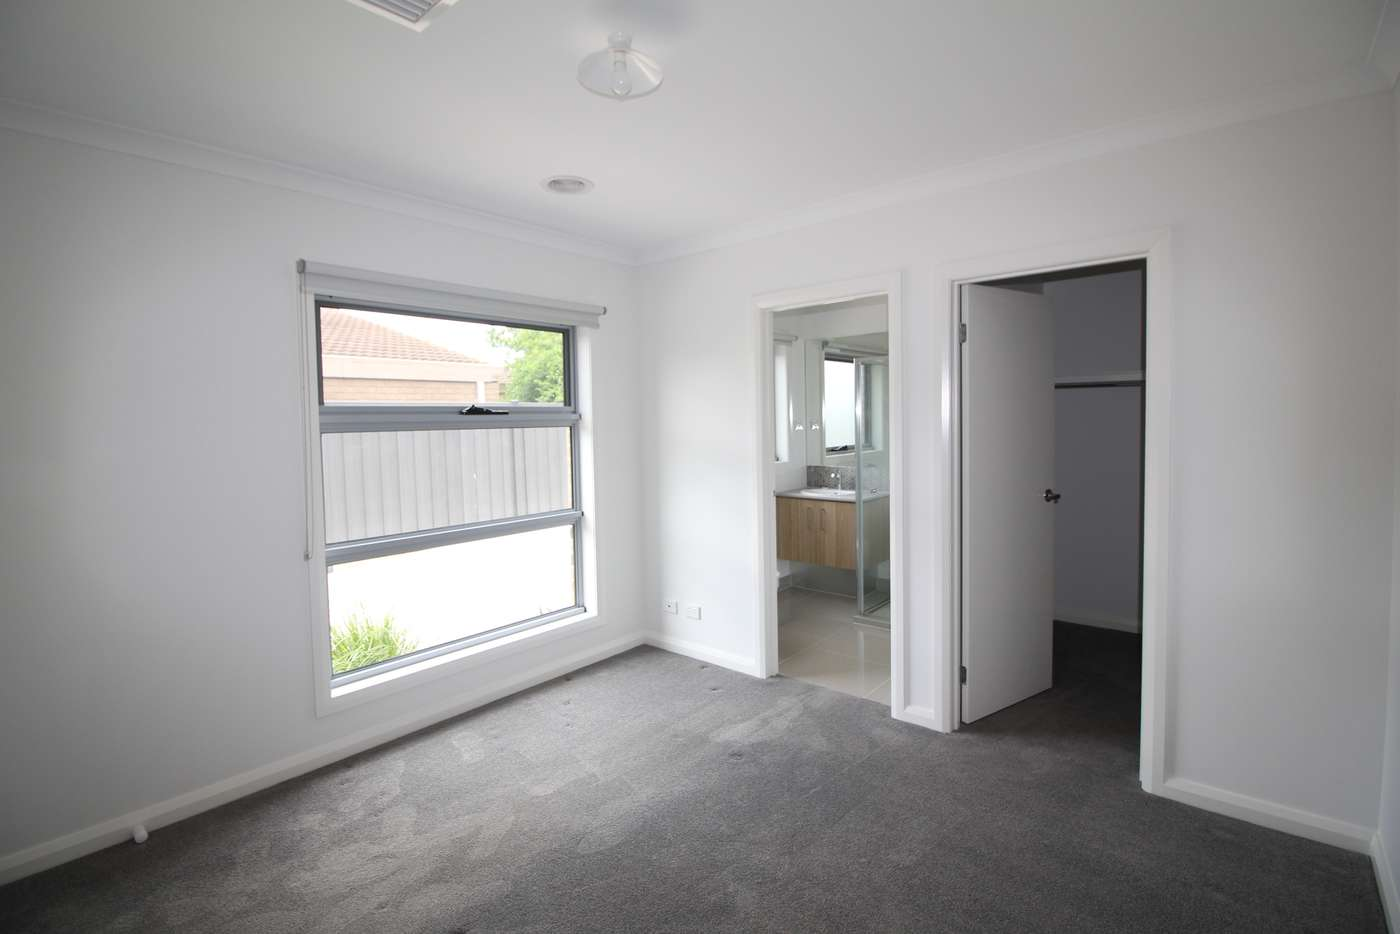 Sixth view of Homely house listing, 2/8 Larcombe Street, Highton VIC 3216